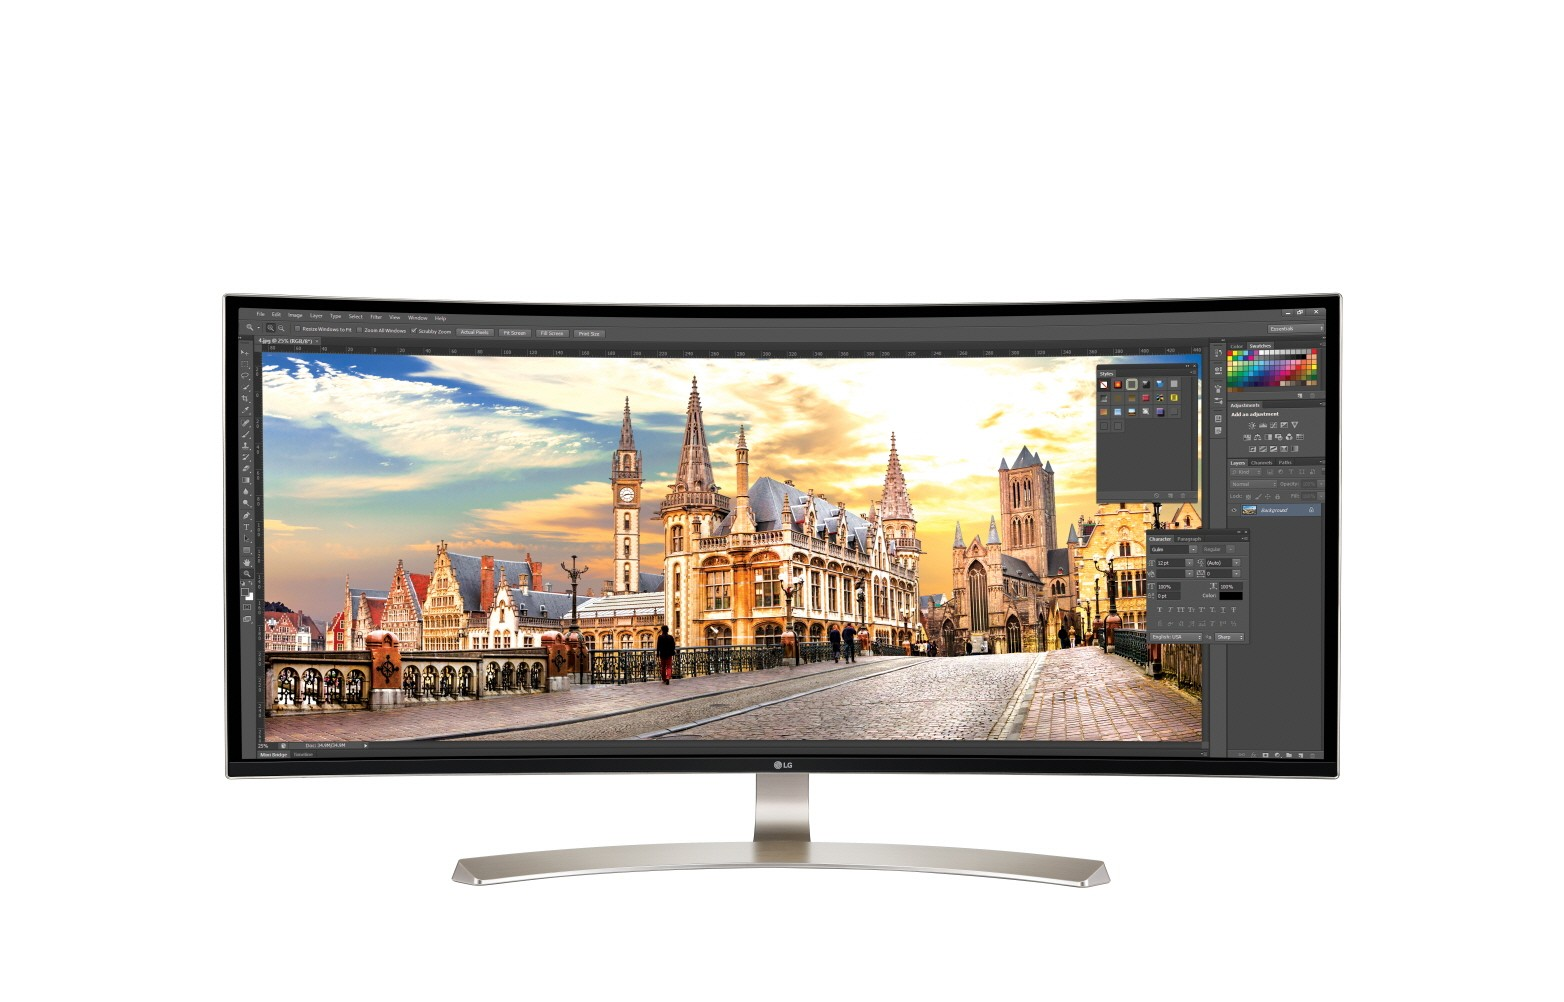 LG, GLOBAL LEADER IN 21:9 ASPECT MONITORS, TO UNVEIL LATEST